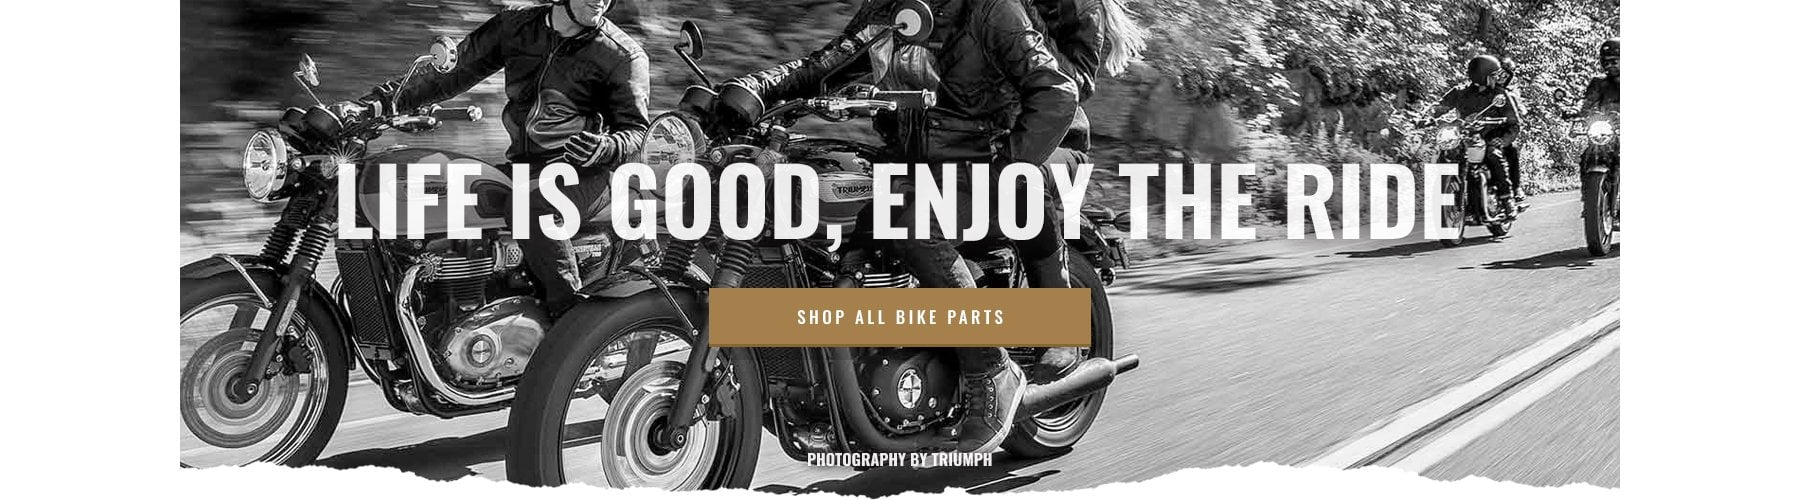 All Bike Parts